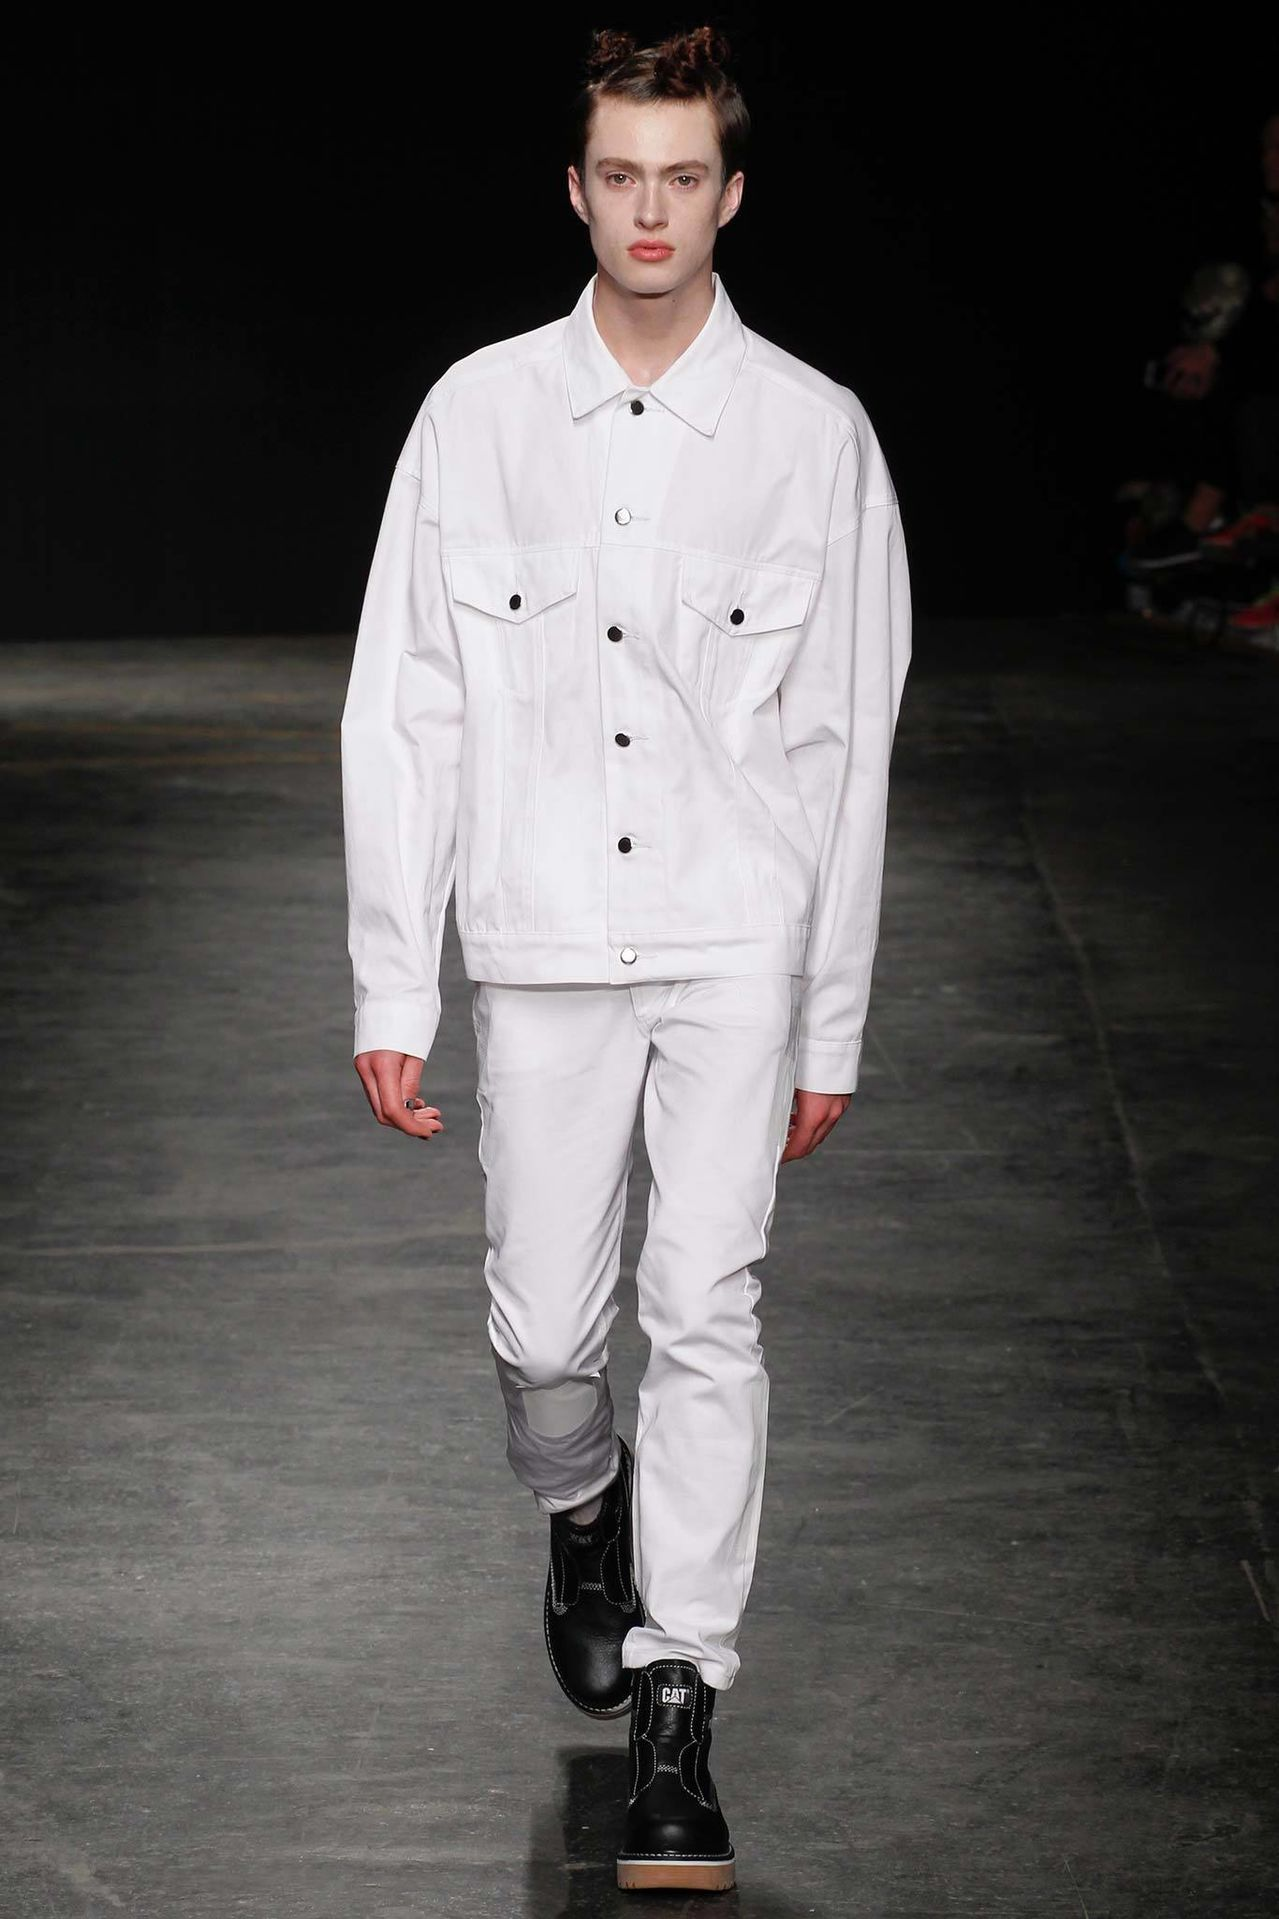 Christopher-Shannon-Spring-Summer-2015-London-Collections-Men-018